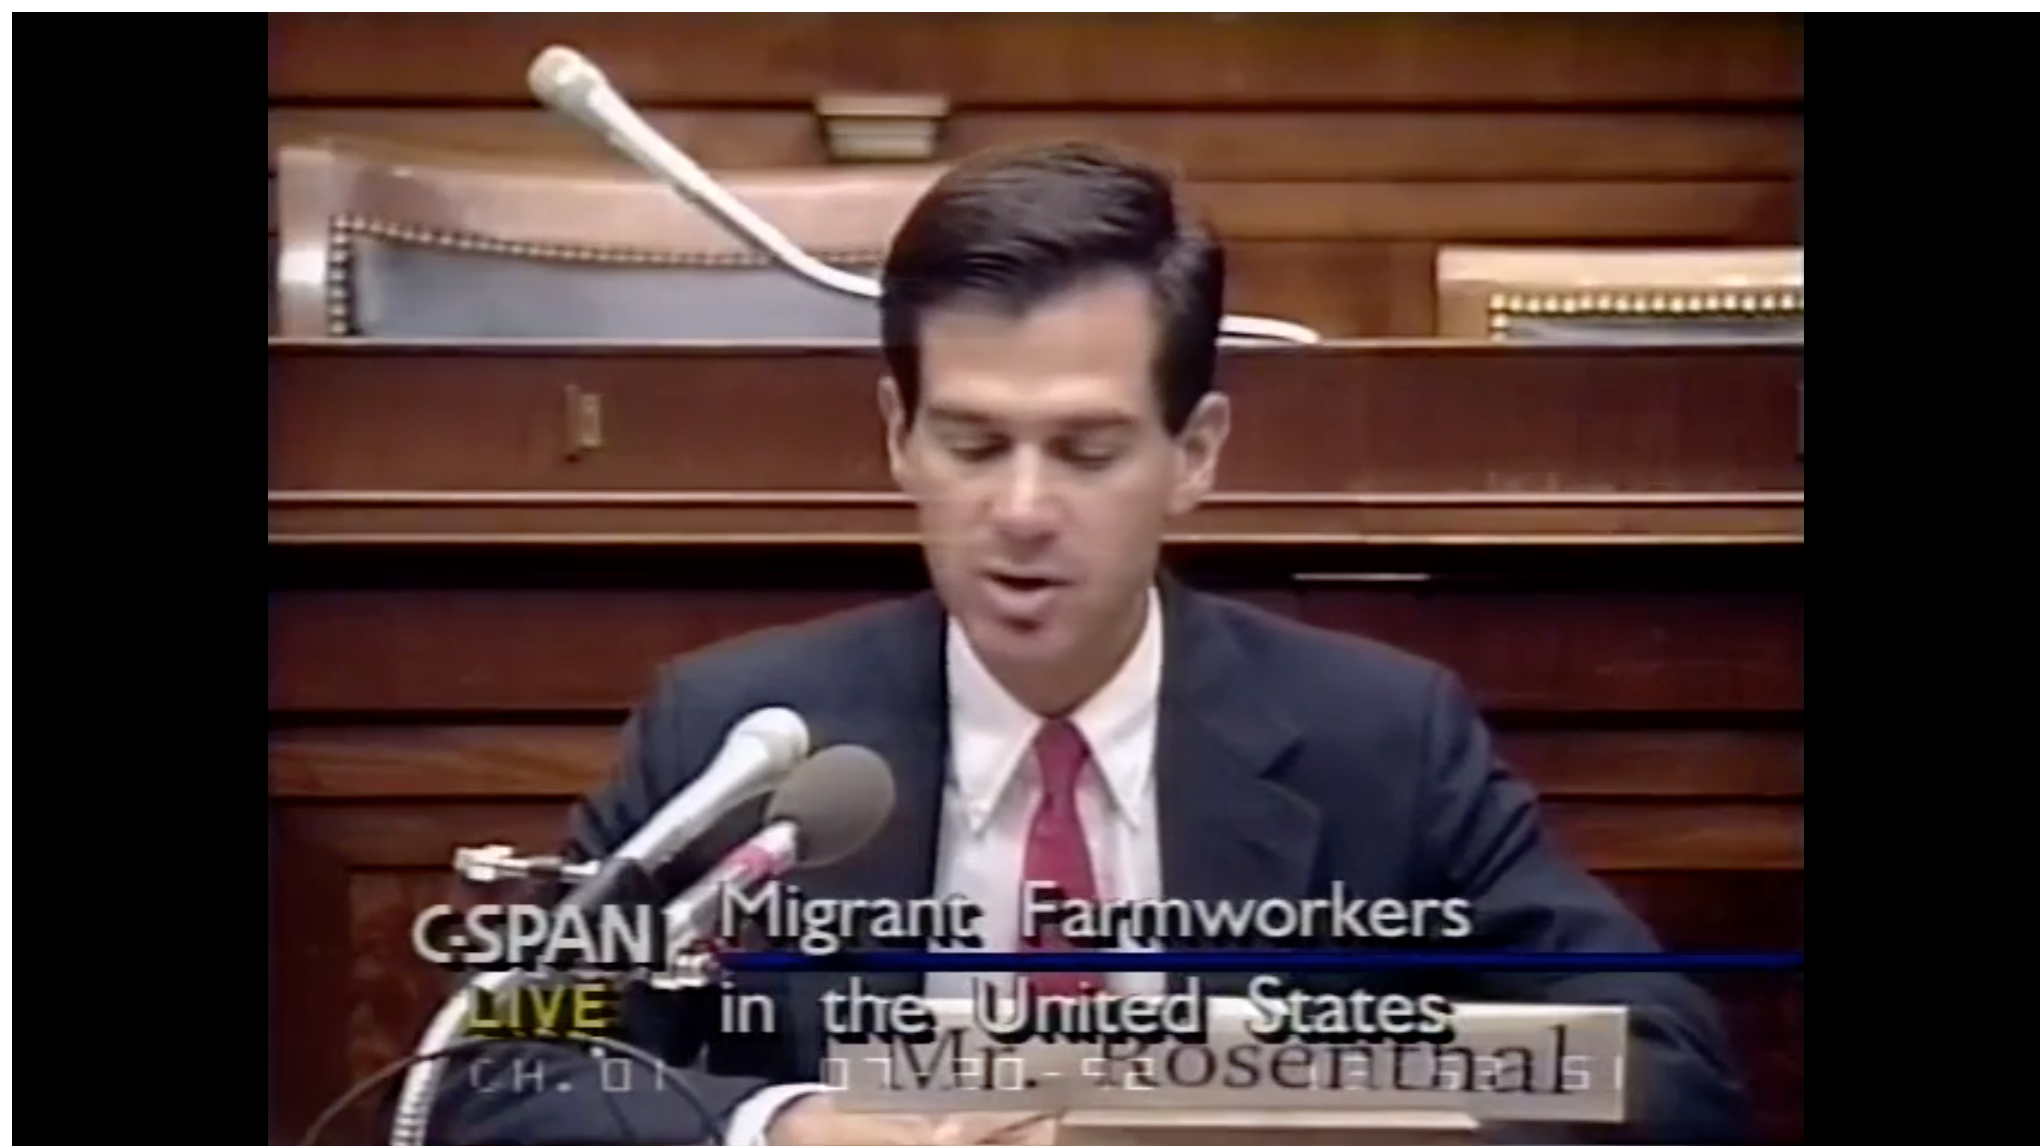 Migrant Legal protections & Working Conditions July 20, 1992